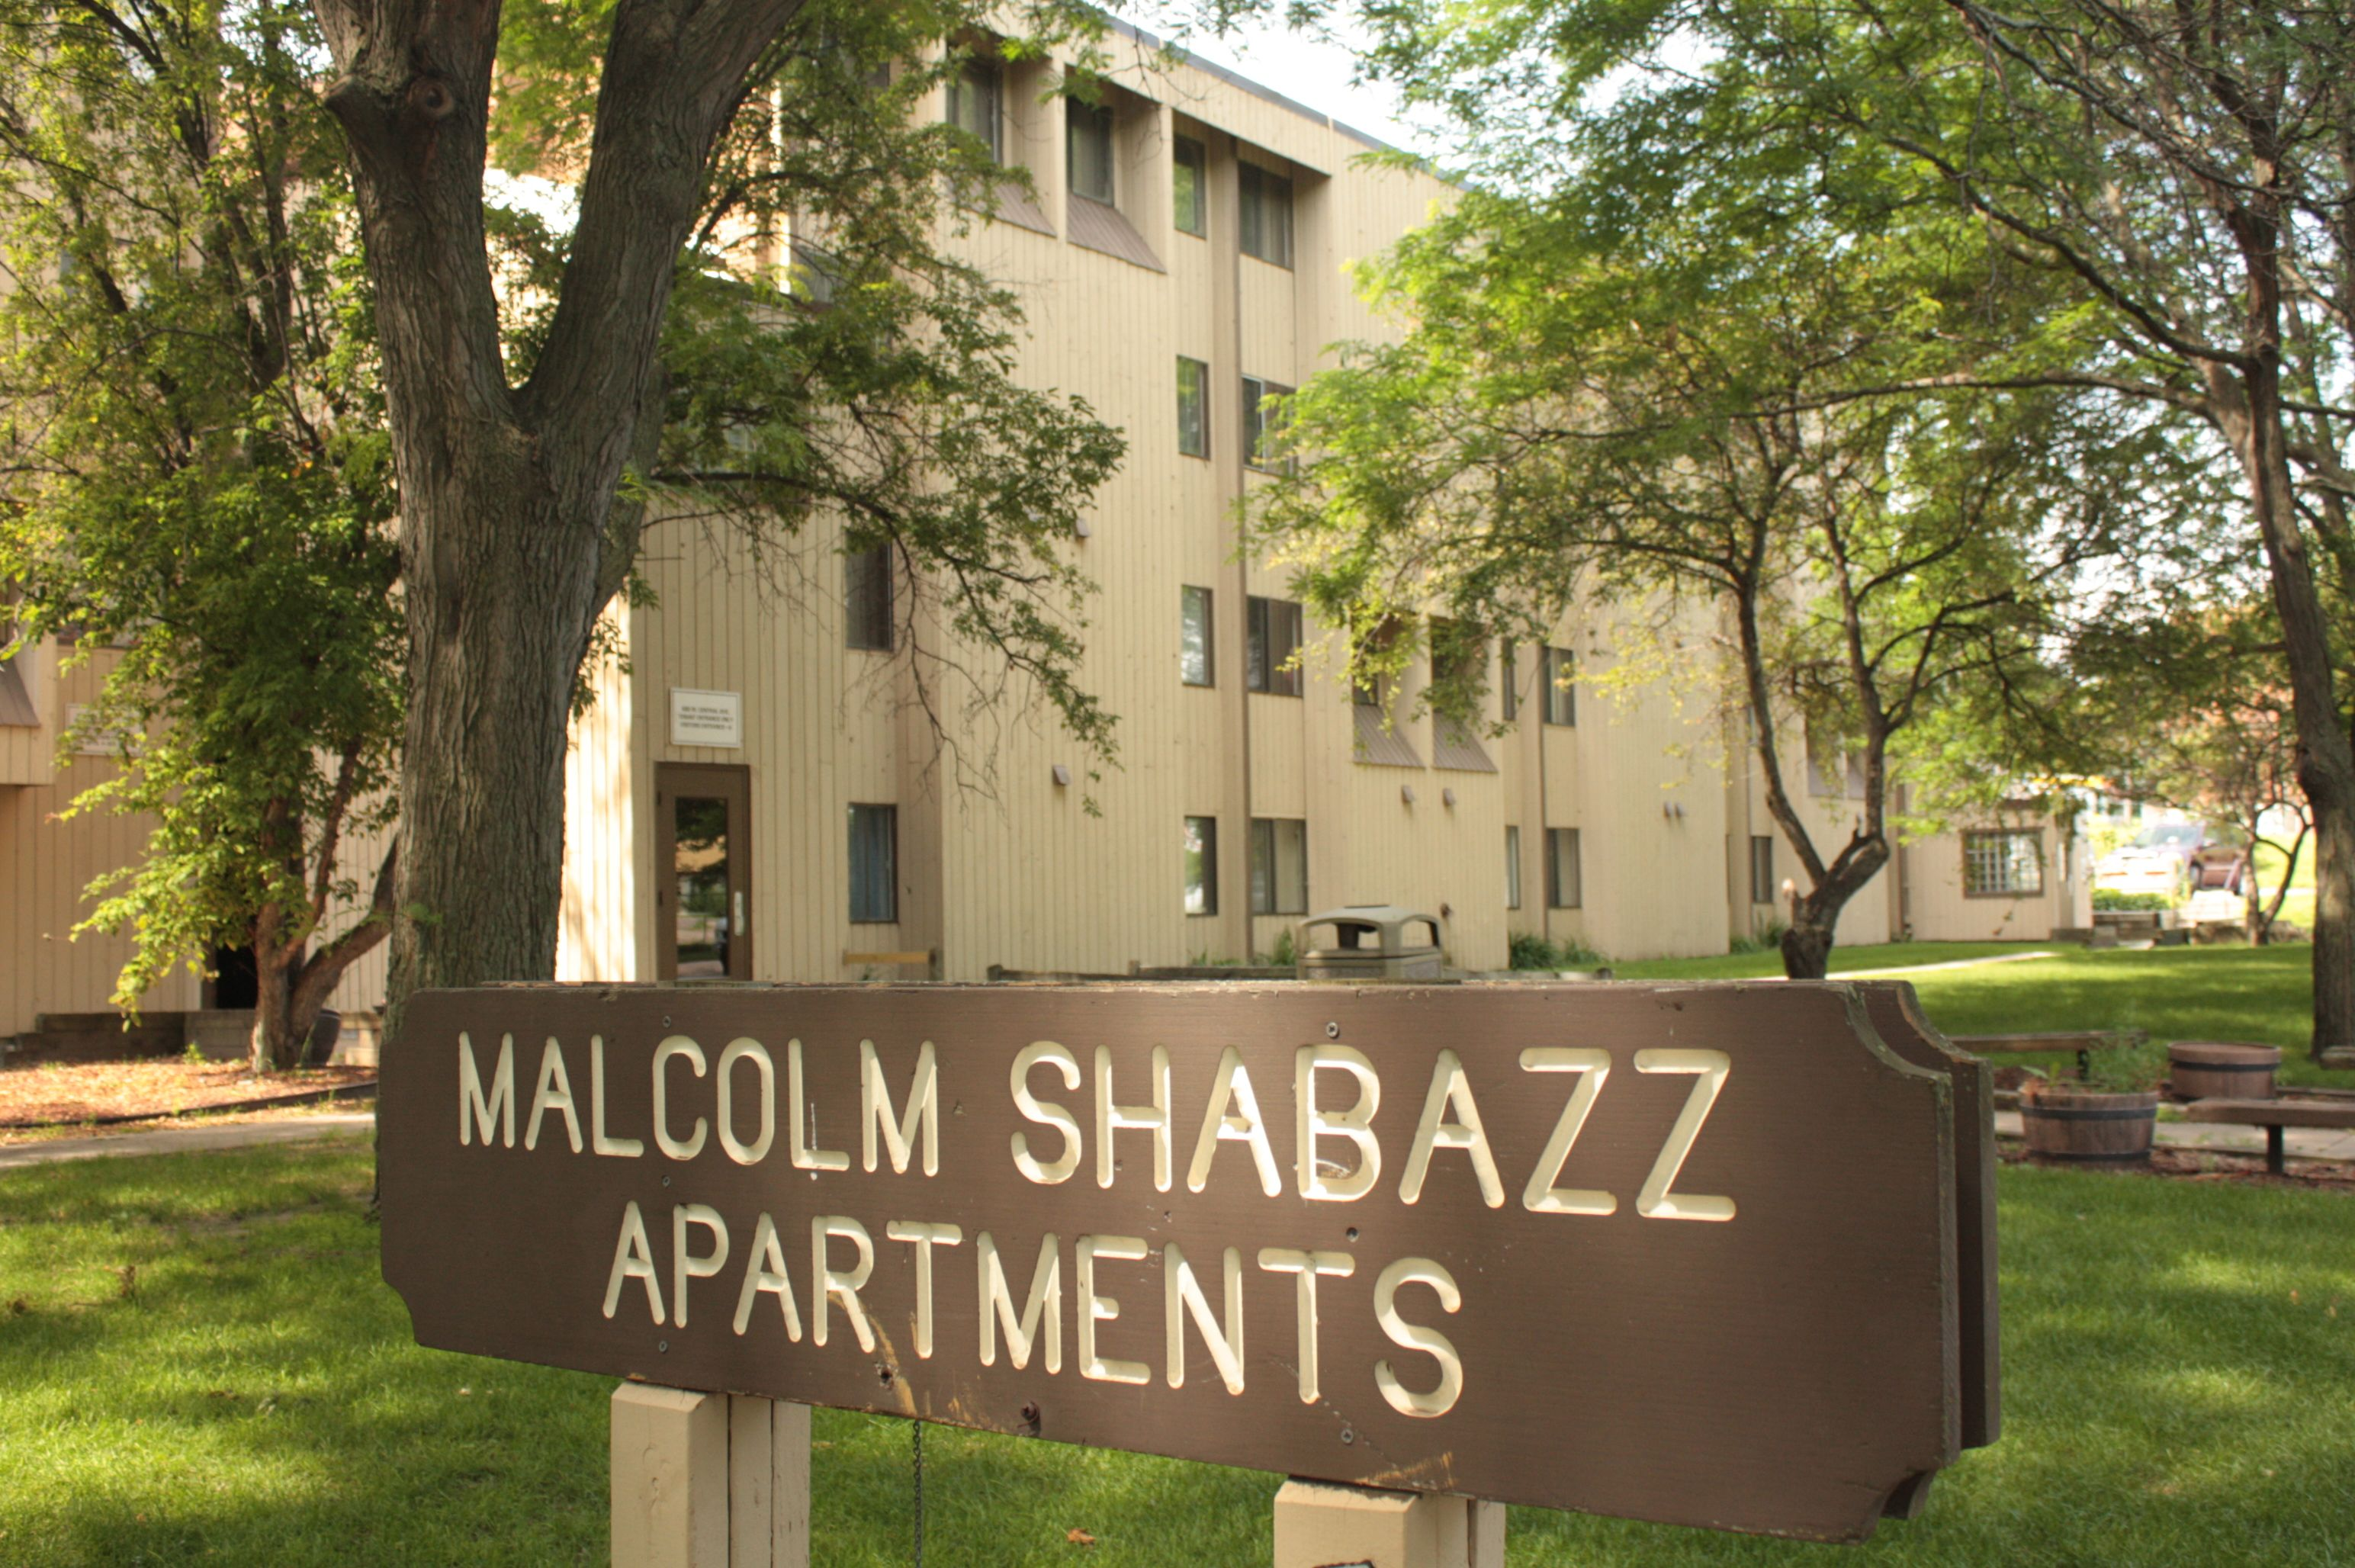 The Malcom Shabbaz Apartments (named For The African American Leader  Commonly Known As Malcom